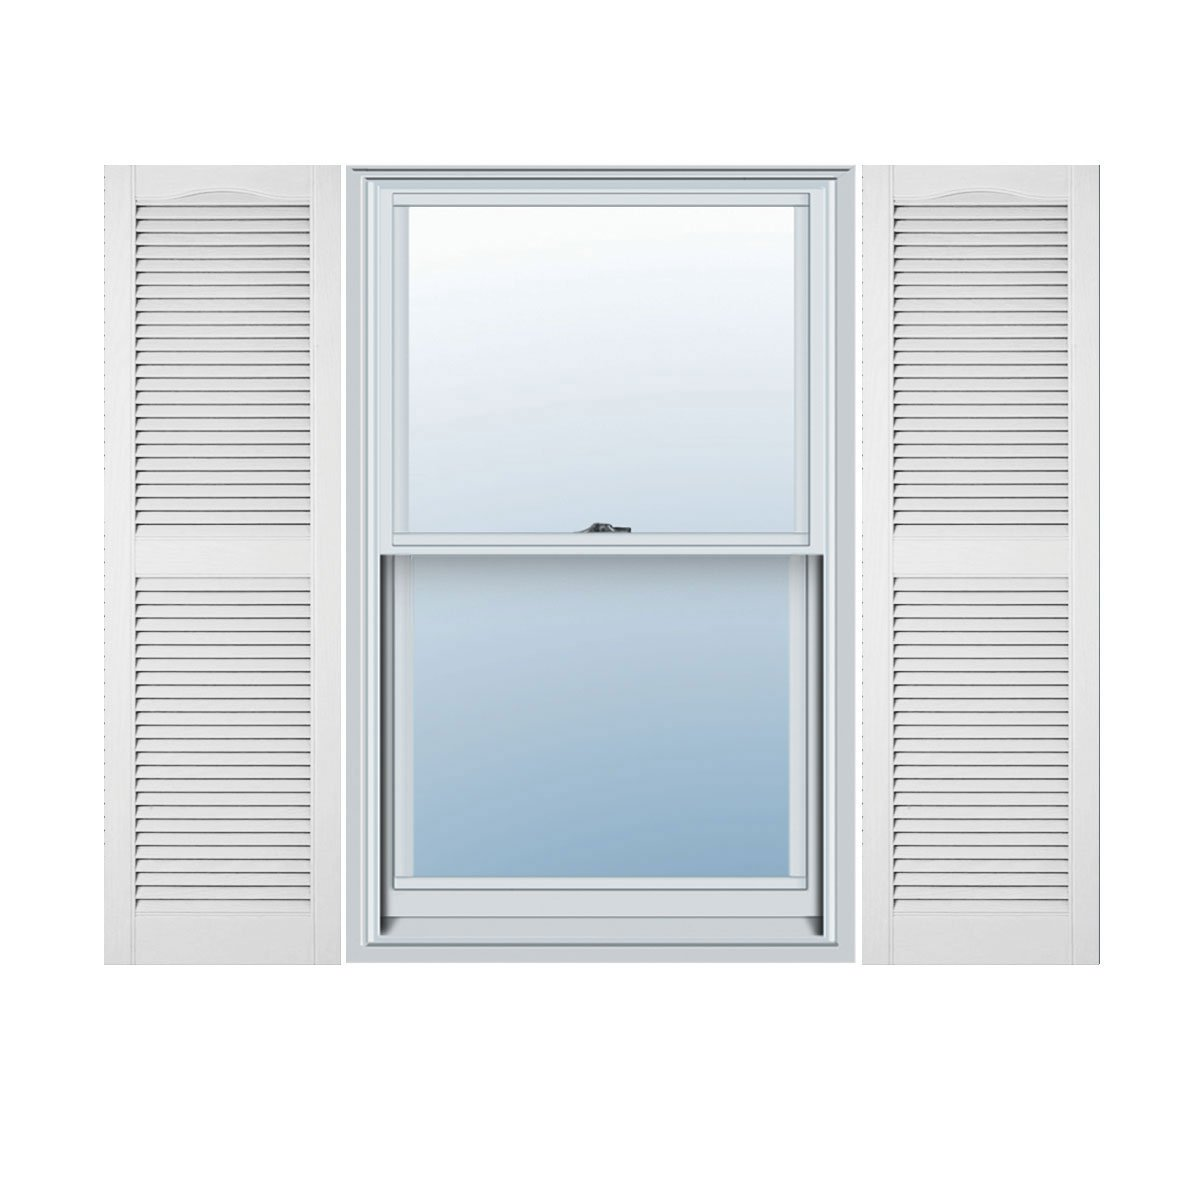 Mid-America 00 01 1267117 12'' x 67'' Bright White Louvered Vinyl Exterior Shutters (Pair)